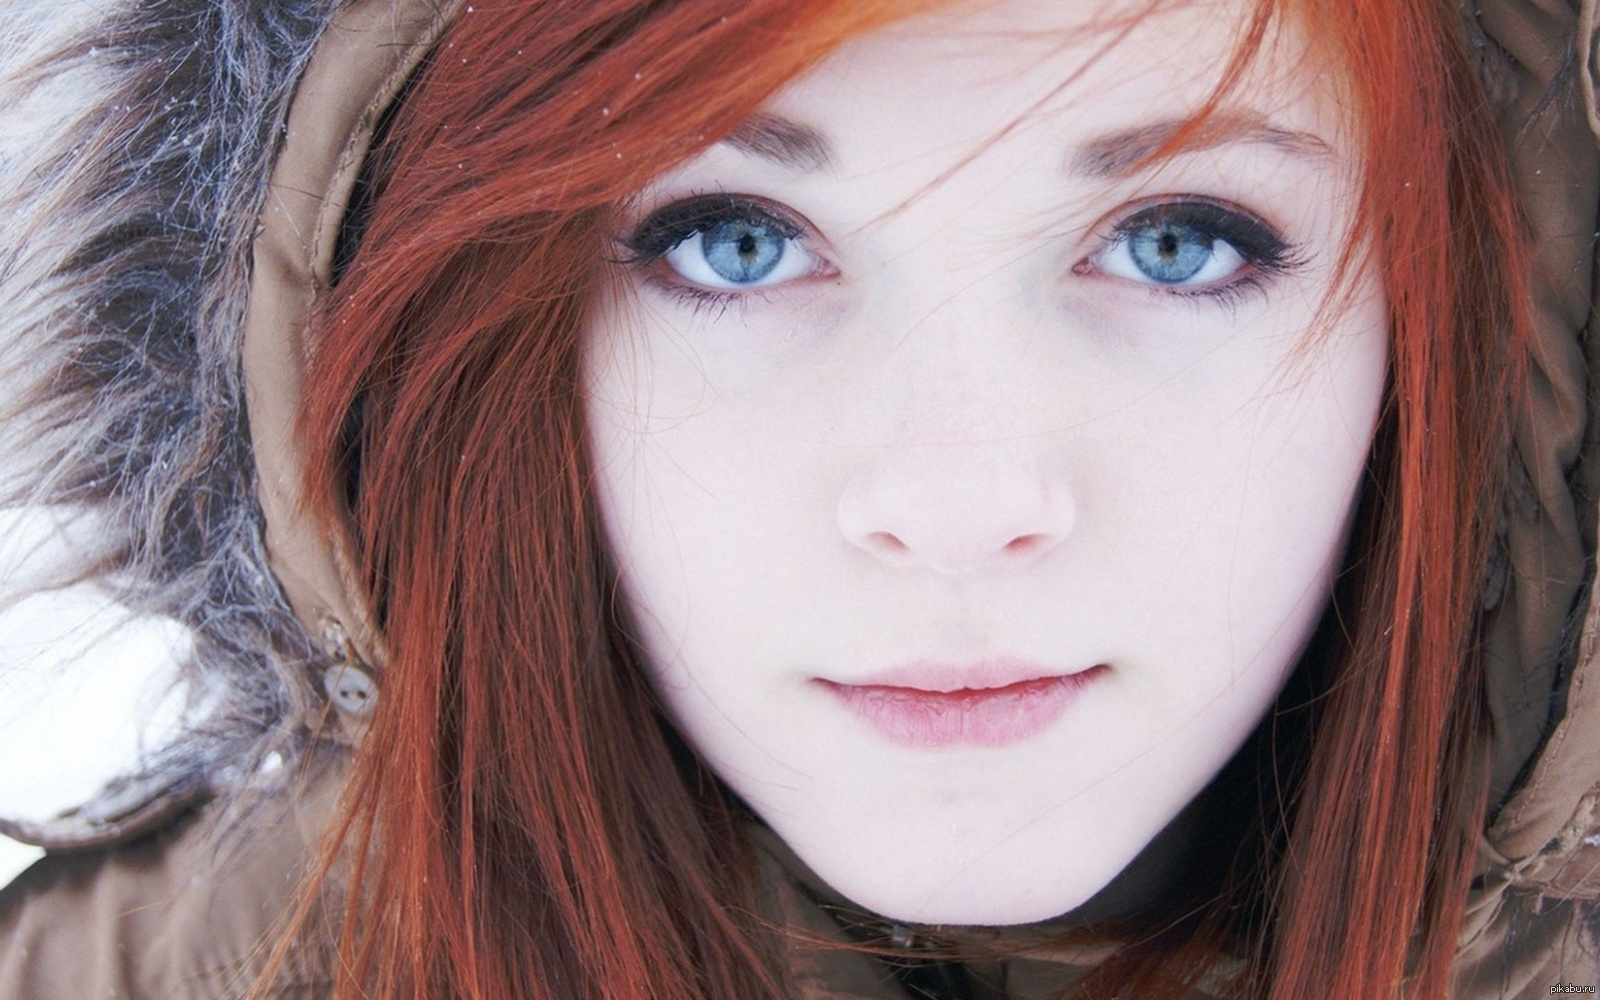 Redhead teen girl Alex Tanner flashes her tiny tits and ass against a wall № 1544283 бесплатно